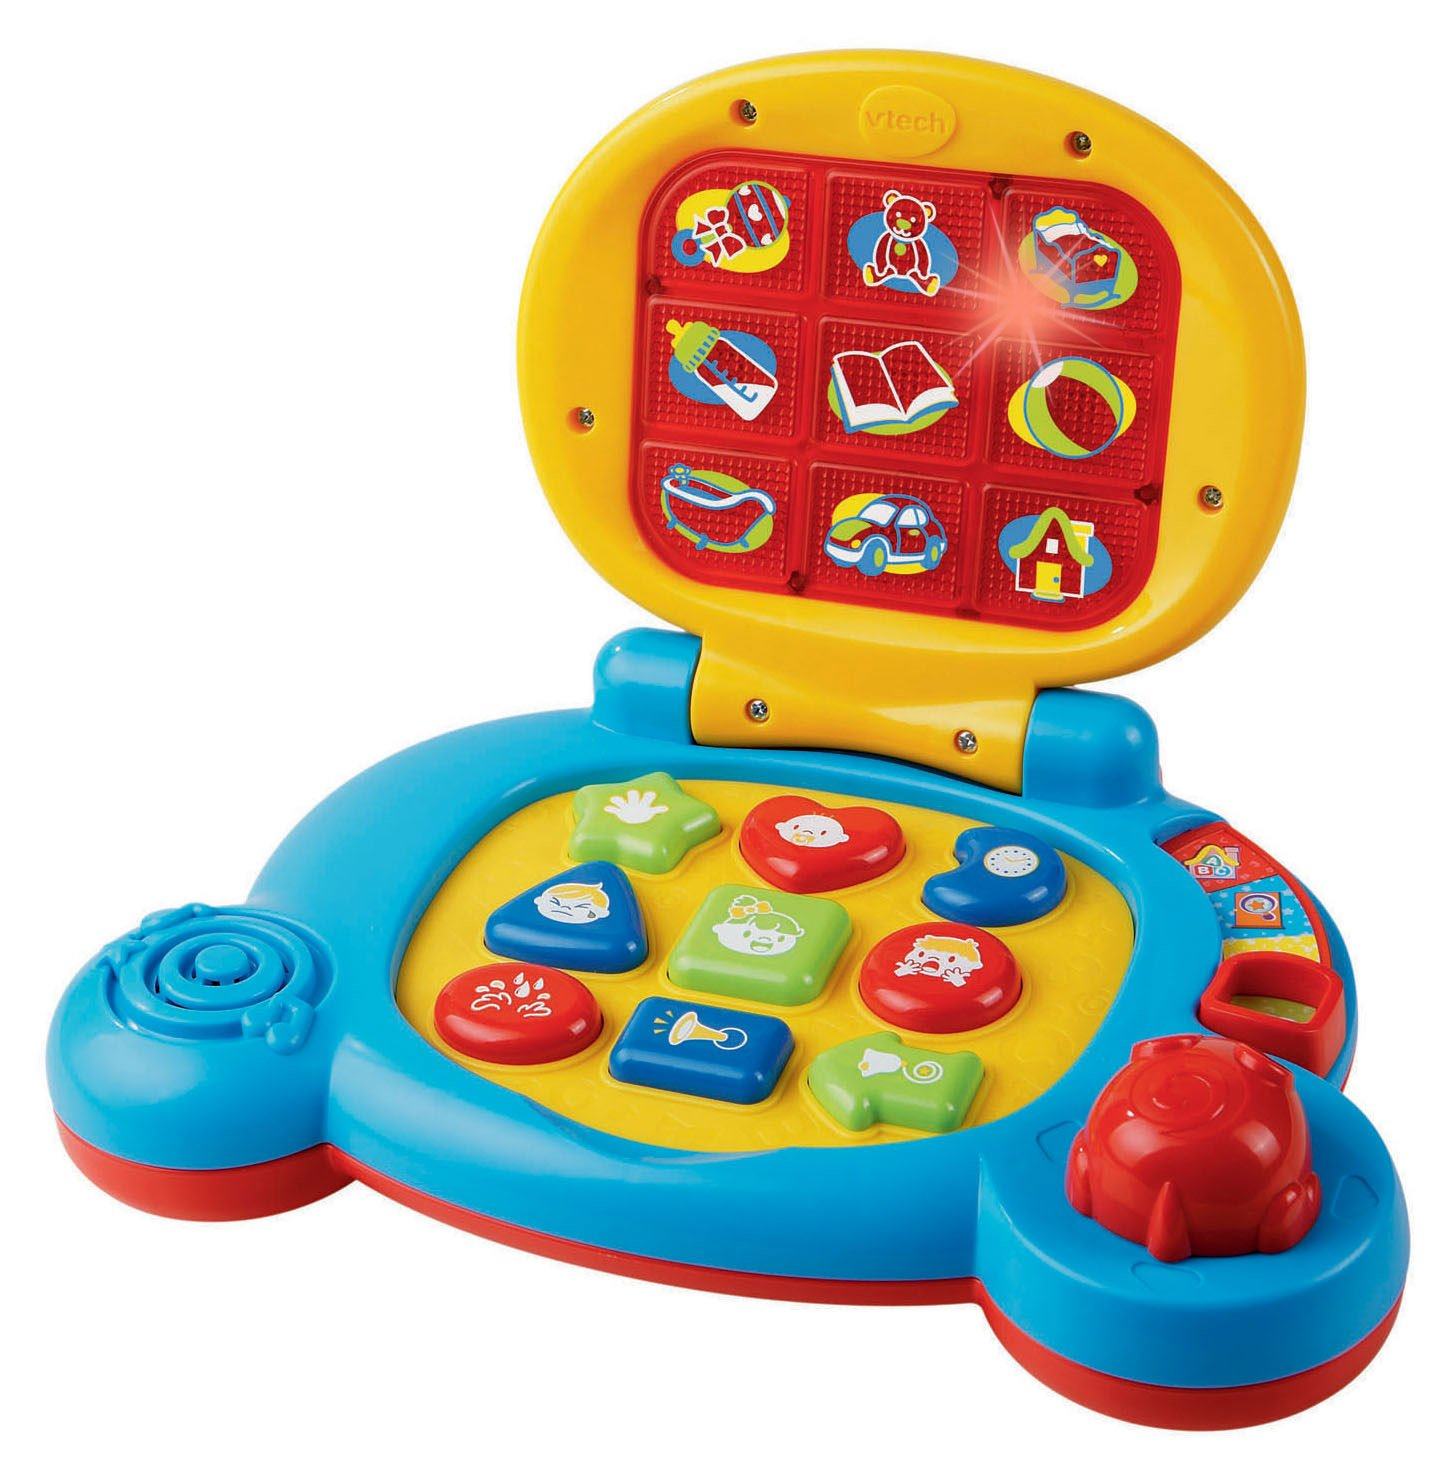 Amazon VTech Baby s Learning Laptop Blue Toys & Games